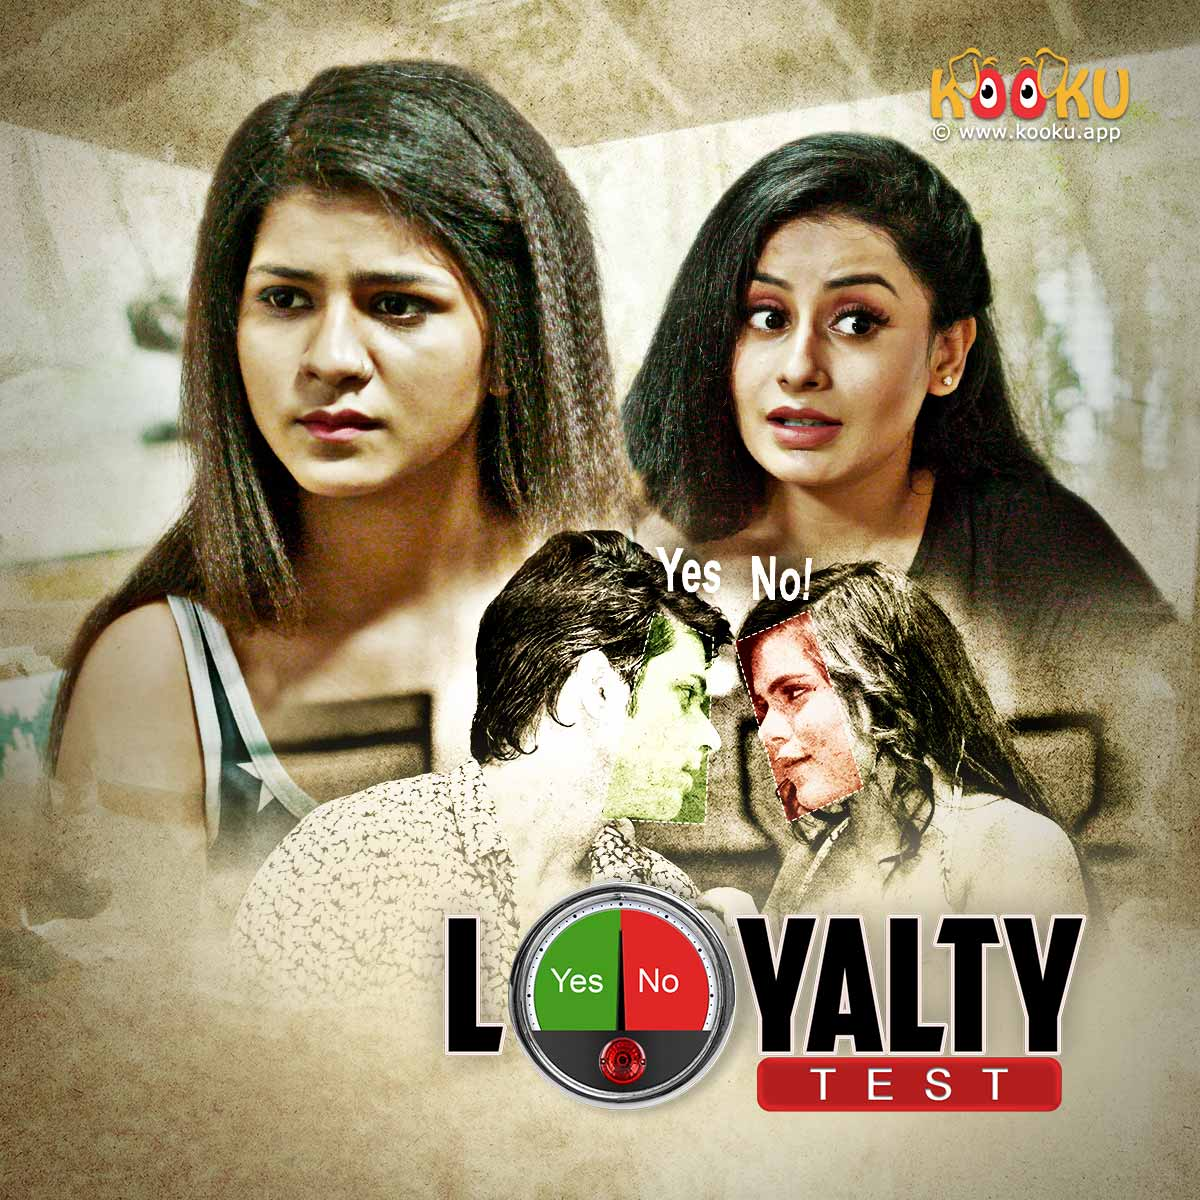 Loyalty Test 2021 S01 Hindi Kooku App Original Web Series Official Trailer 1080p HDRip Download